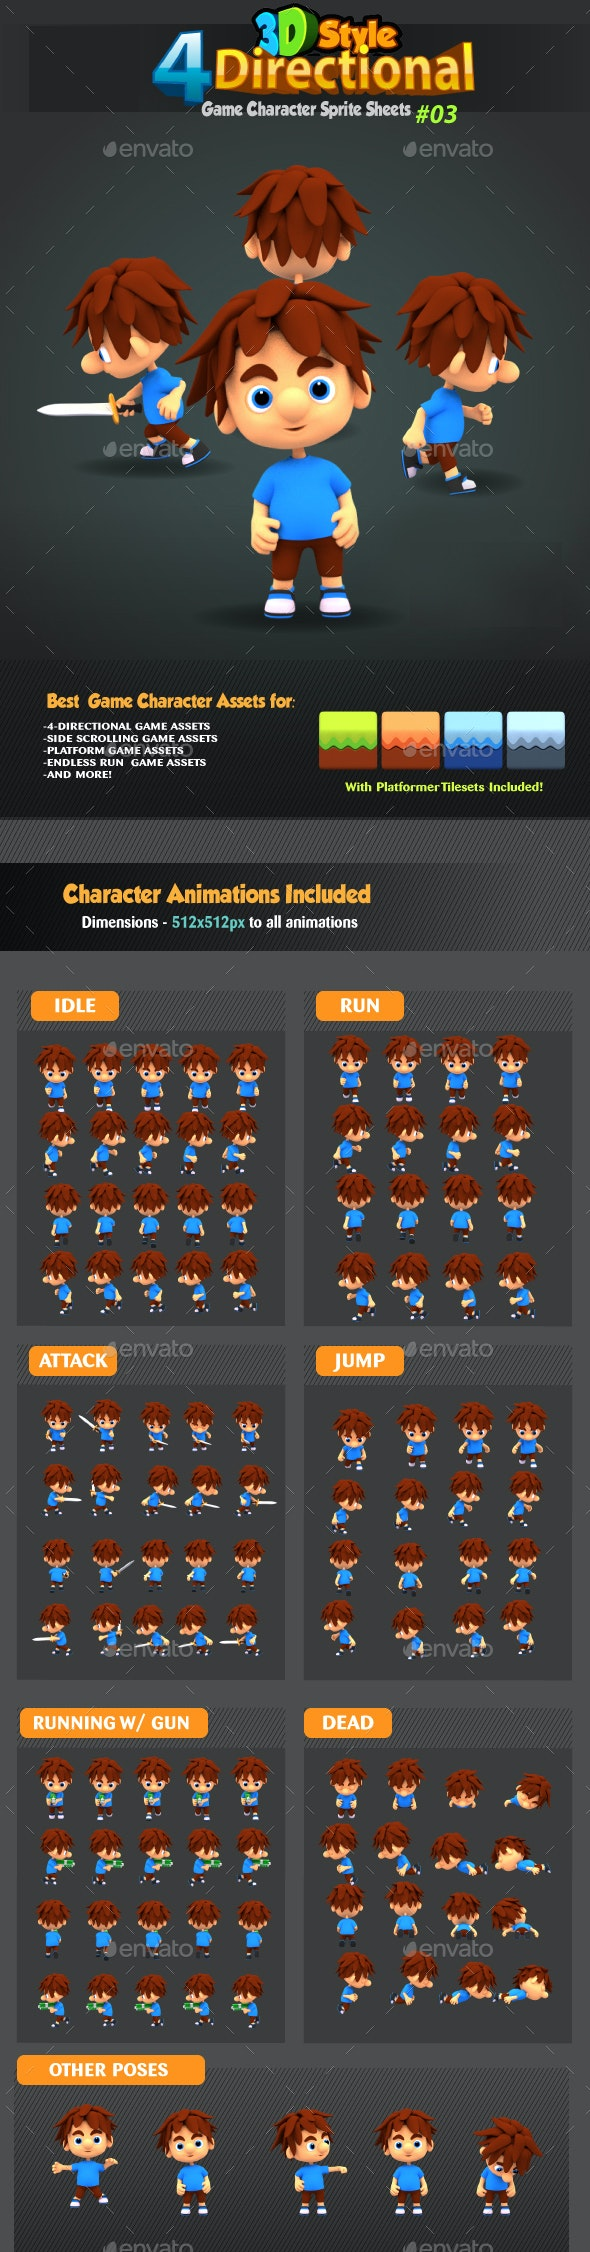 4 Directional 3D Style Game Character Sprites 03 - Sprites Game Assets